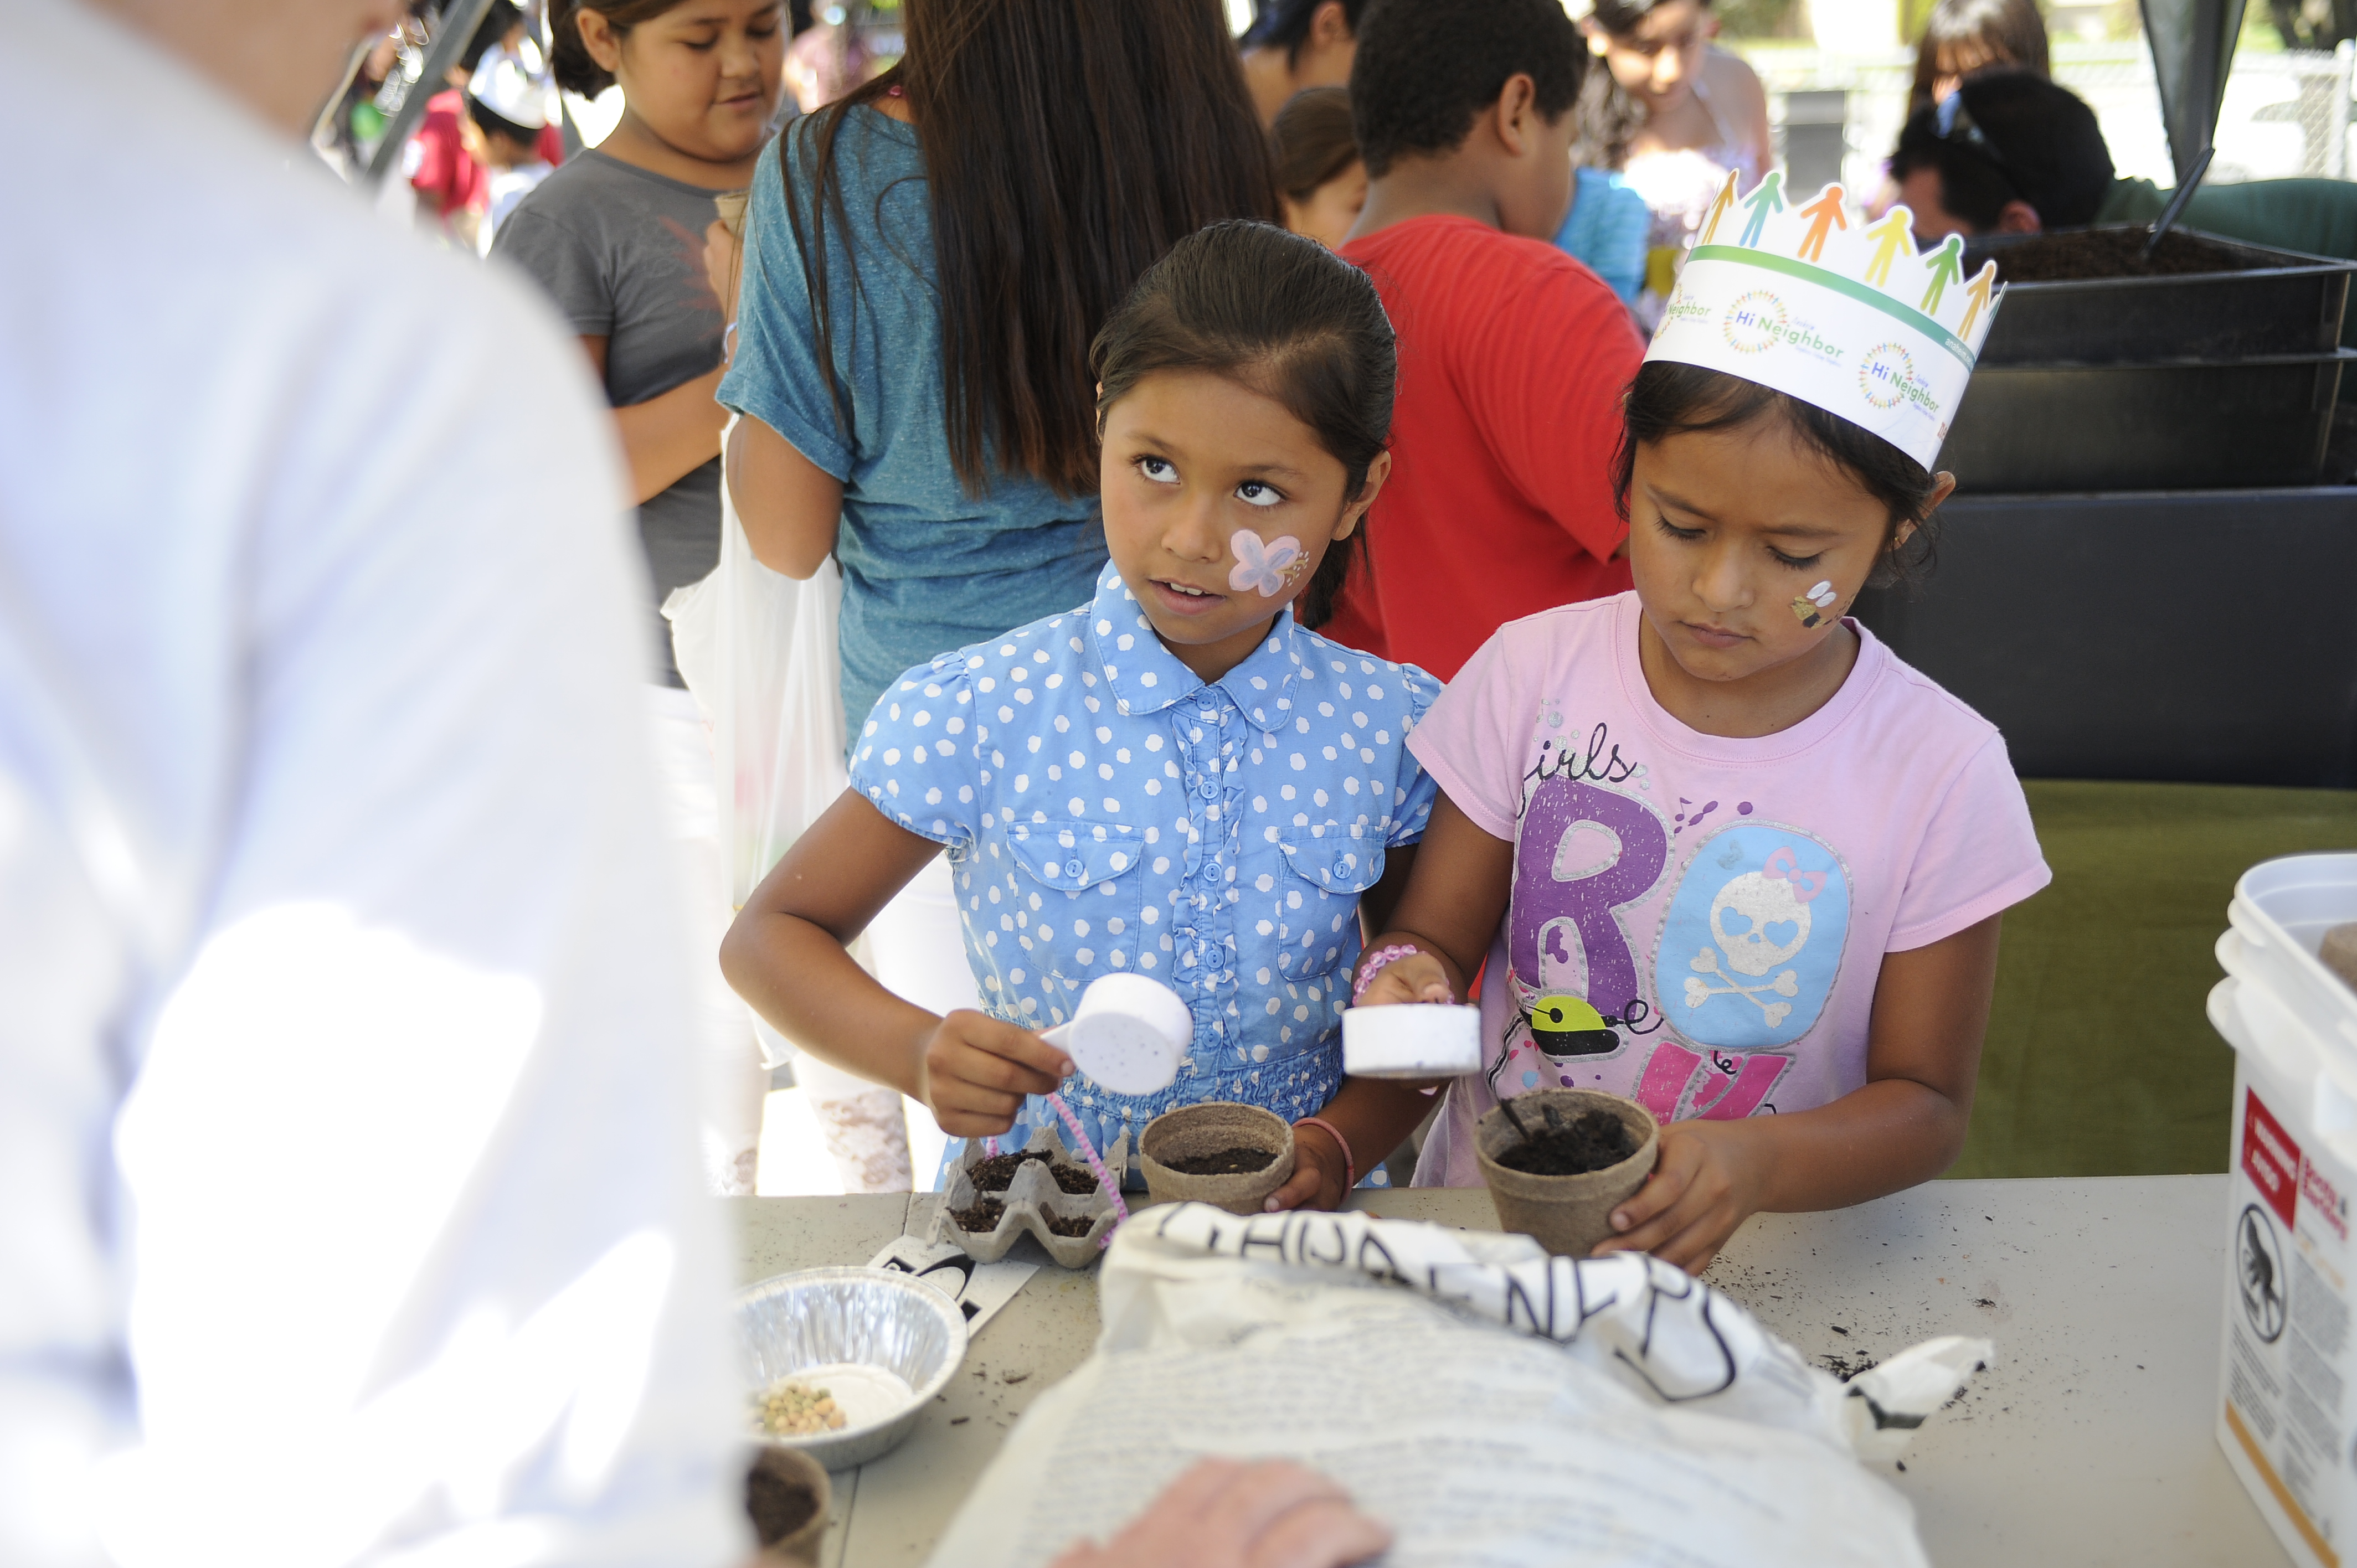 Two young girls with face paint planting their seedlings